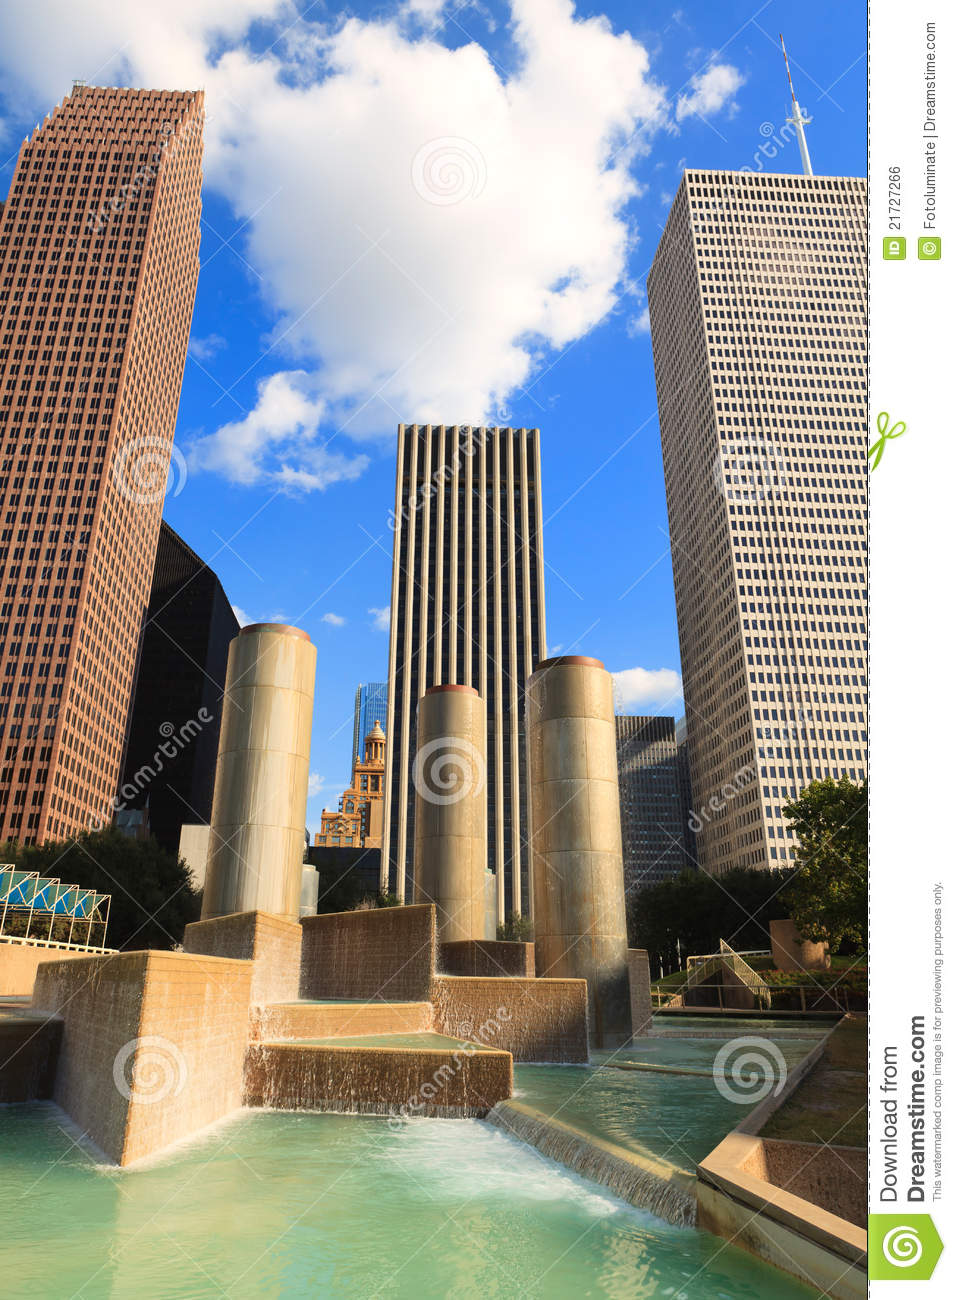 downtown houston stock photo image of clouds fountain 21727266. Black Bedroom Furniture Sets. Home Design Ideas